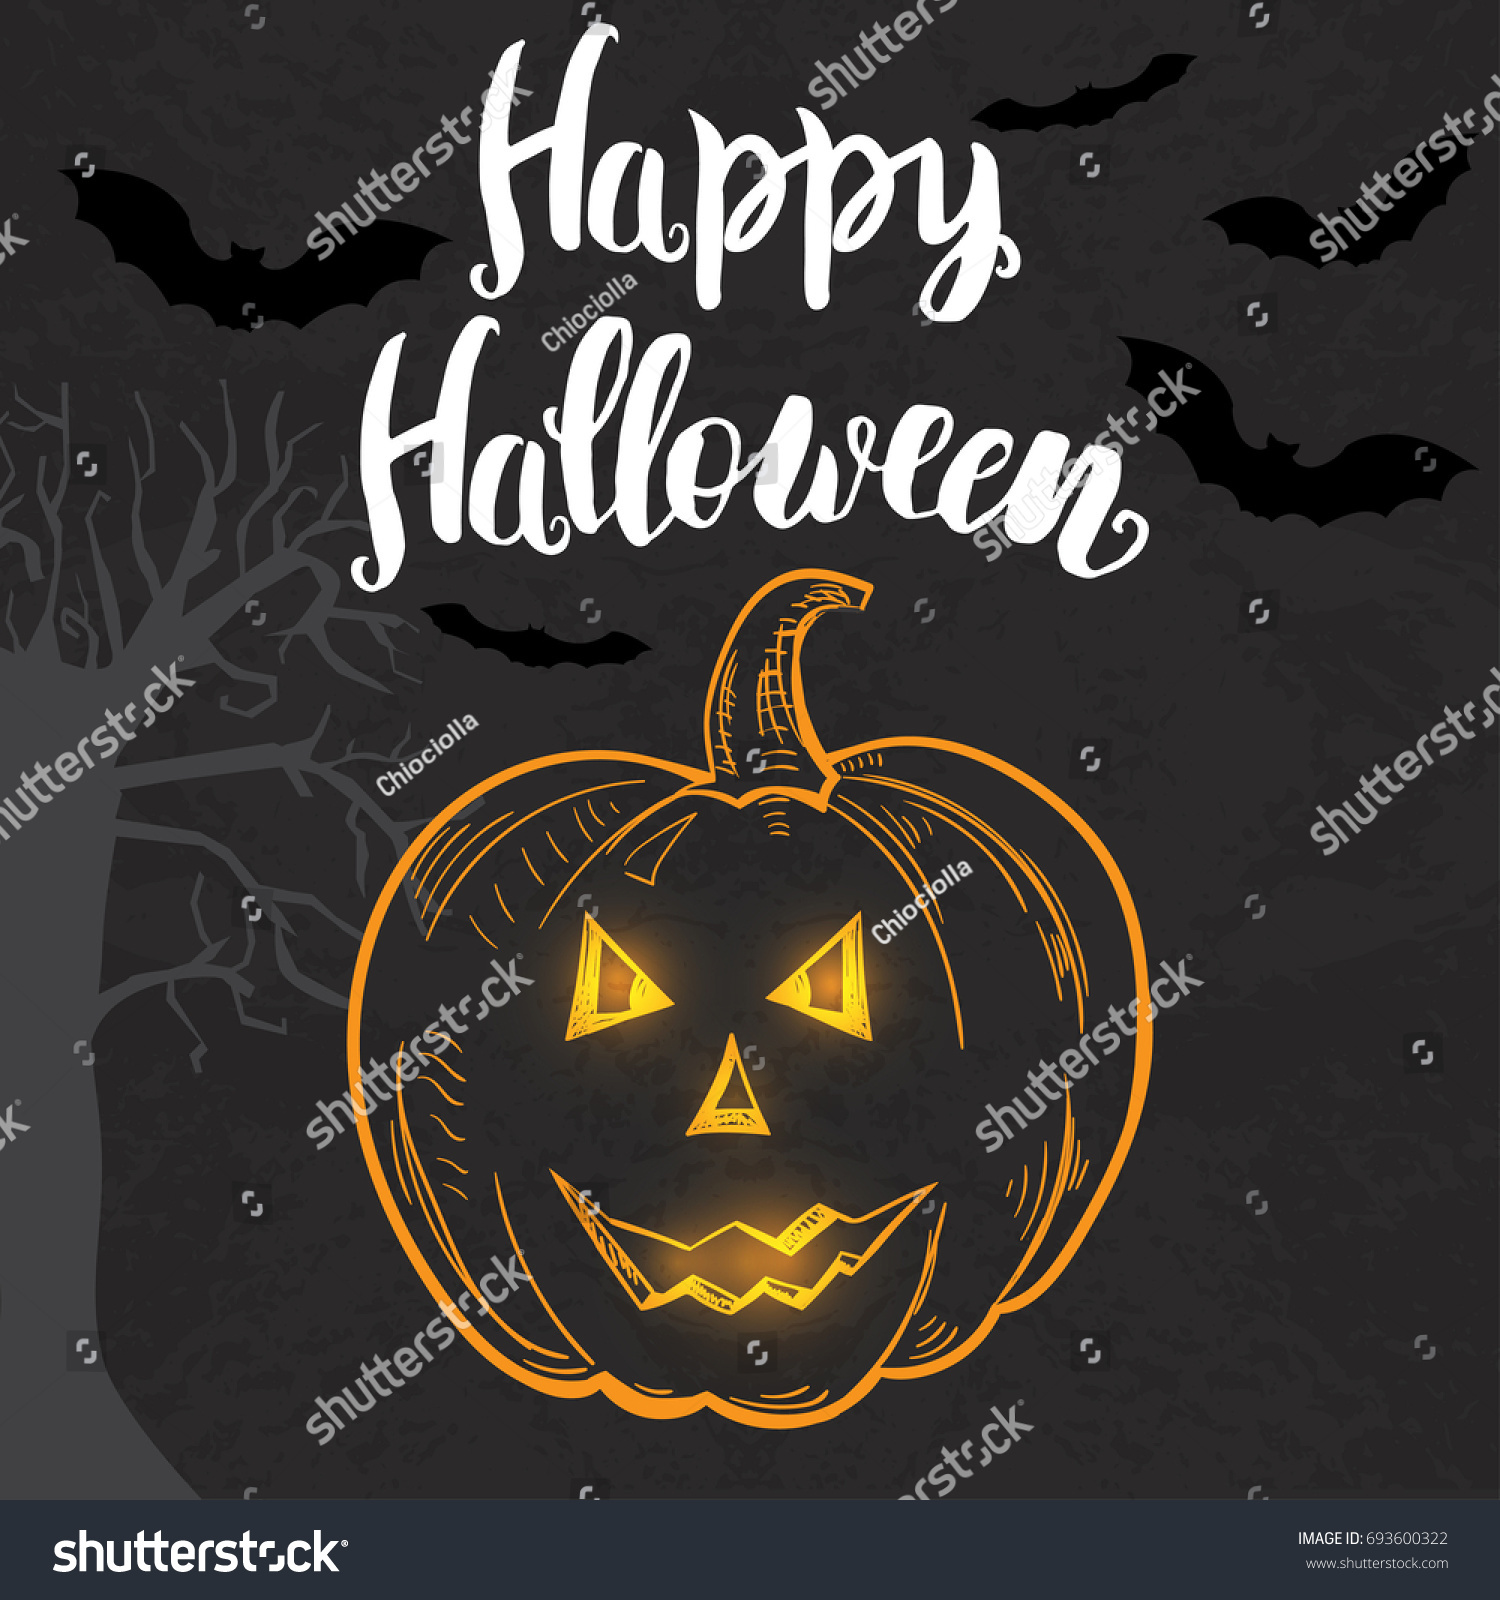 Halloween Template With Hand Drawn Pumpkin And Lettering On The Dark  Background